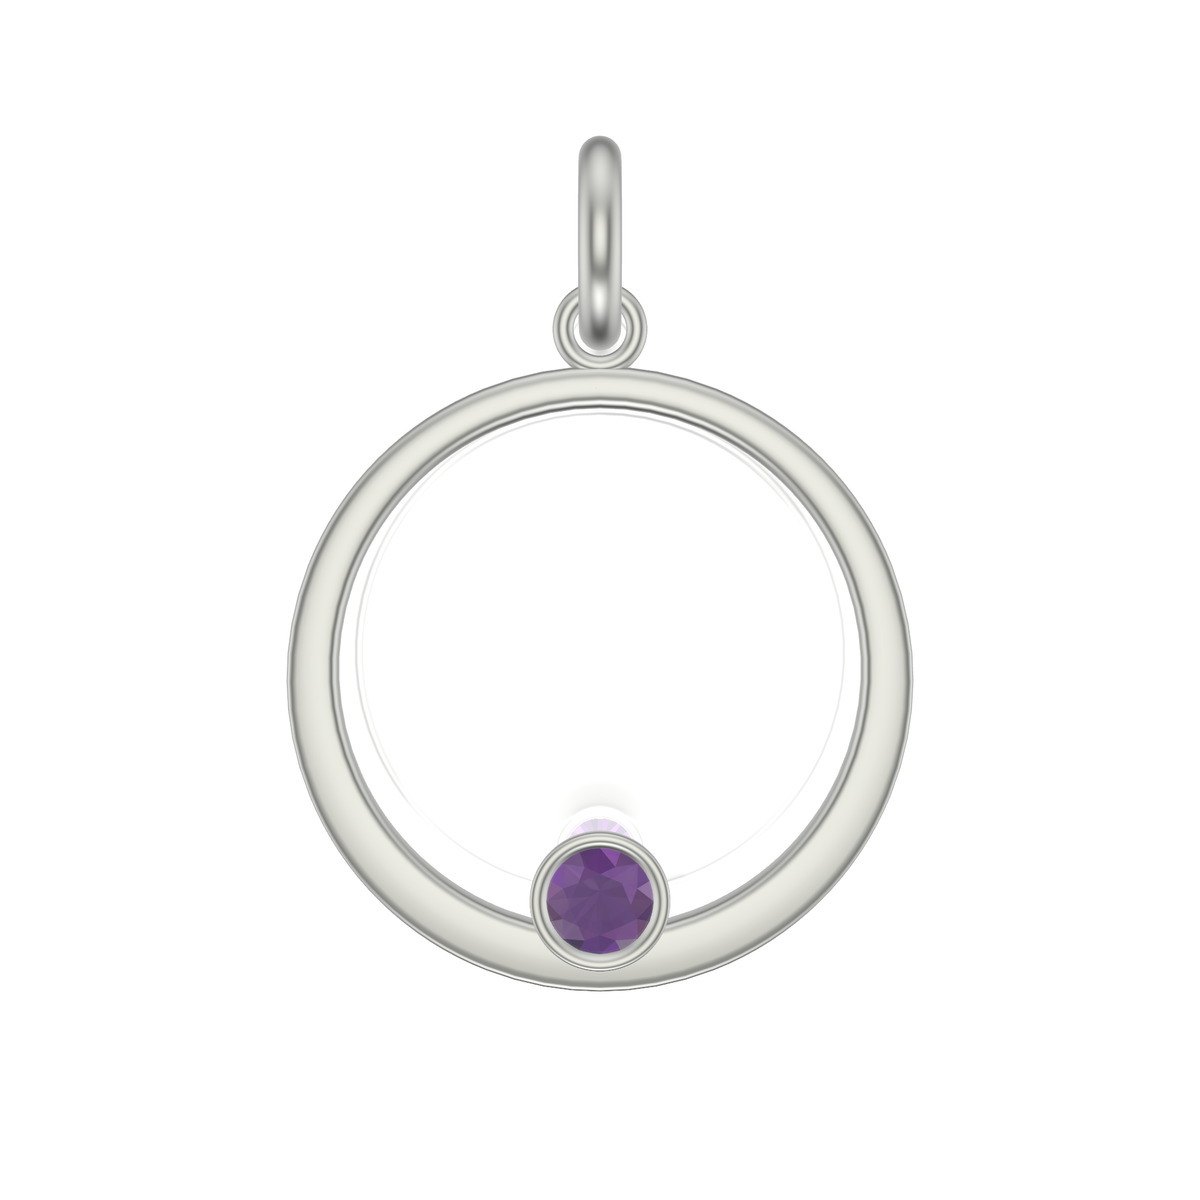 Mothers Circle Framed Charm | Silver Pendant, Large | With Pink Or Purple Garnet Or Spinel